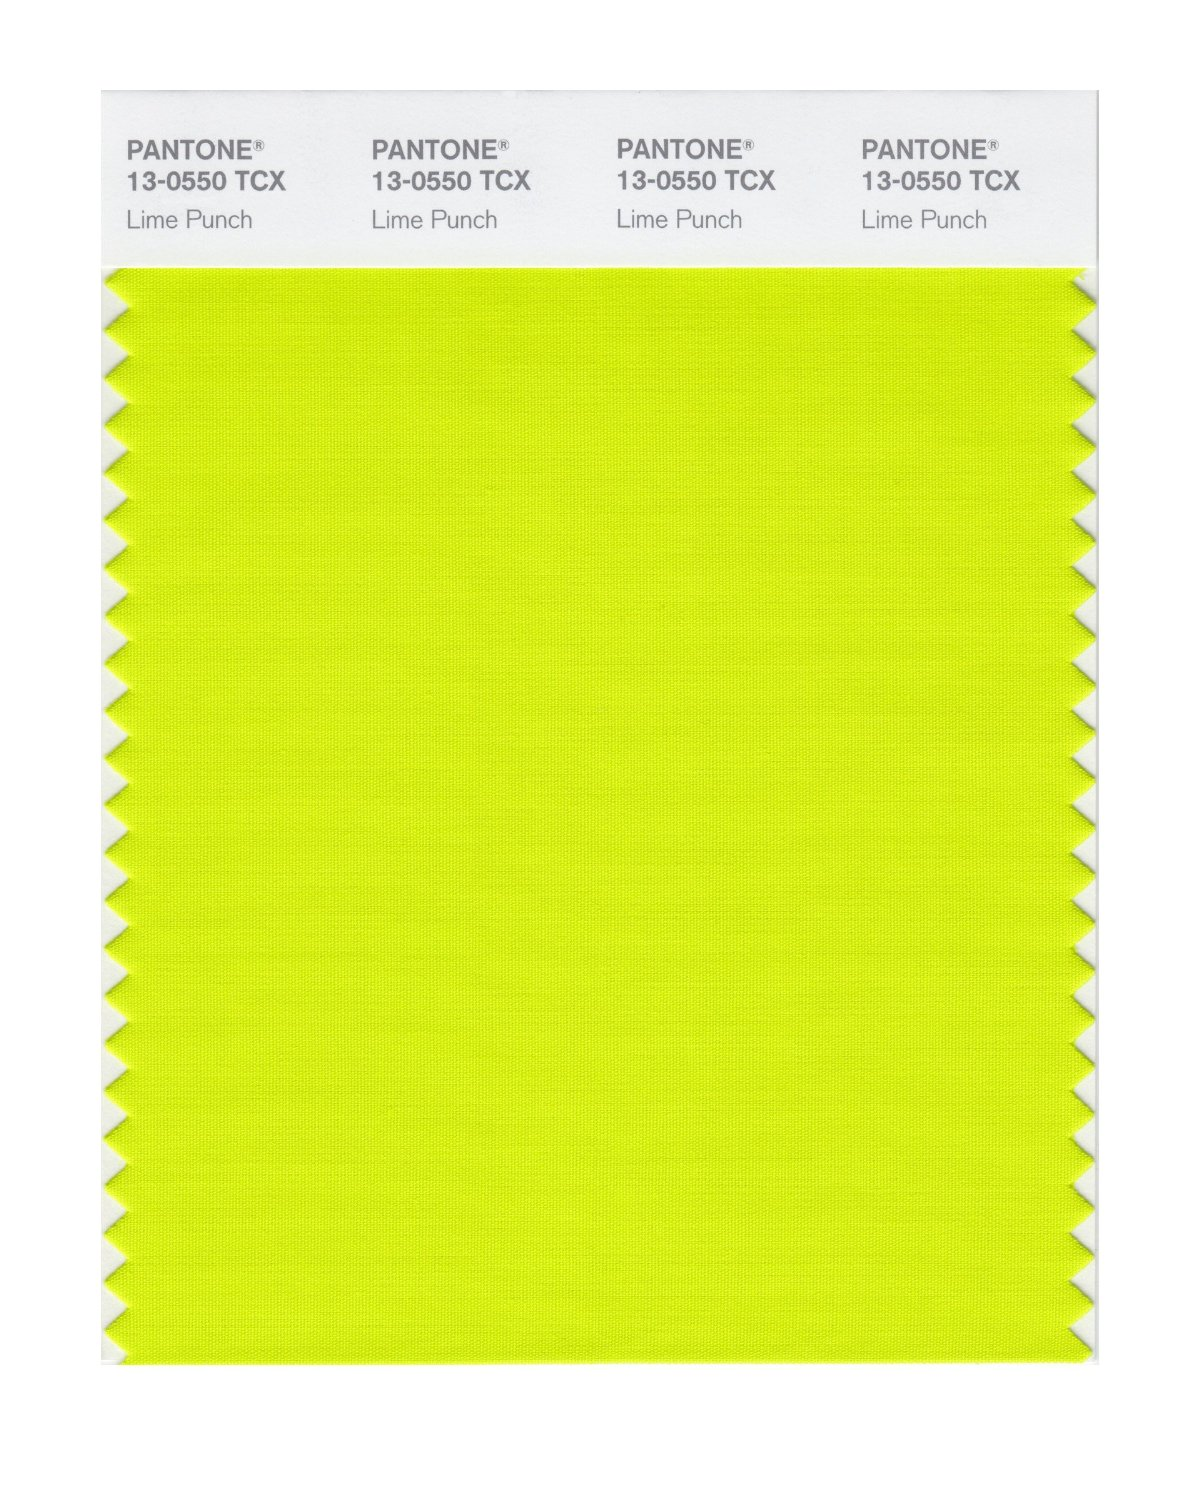 Pantone Smart Swatch 13-0550 Lime Punch